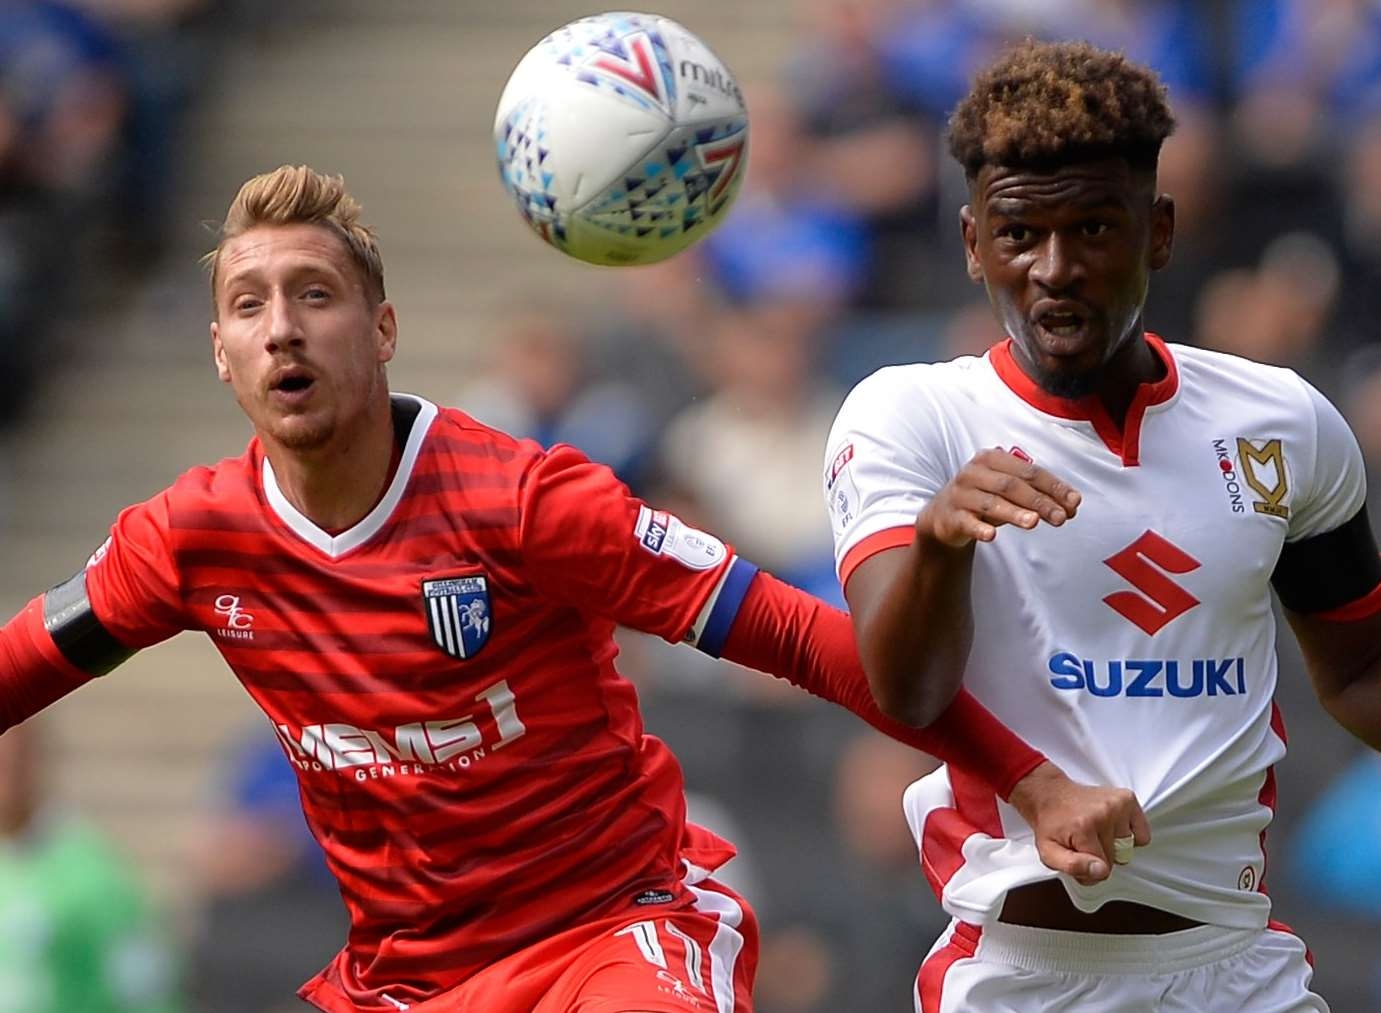 Gillingham's Lee Martin challenges with MK Dons' Aaron Tshibola. Picture: Ady Kerry